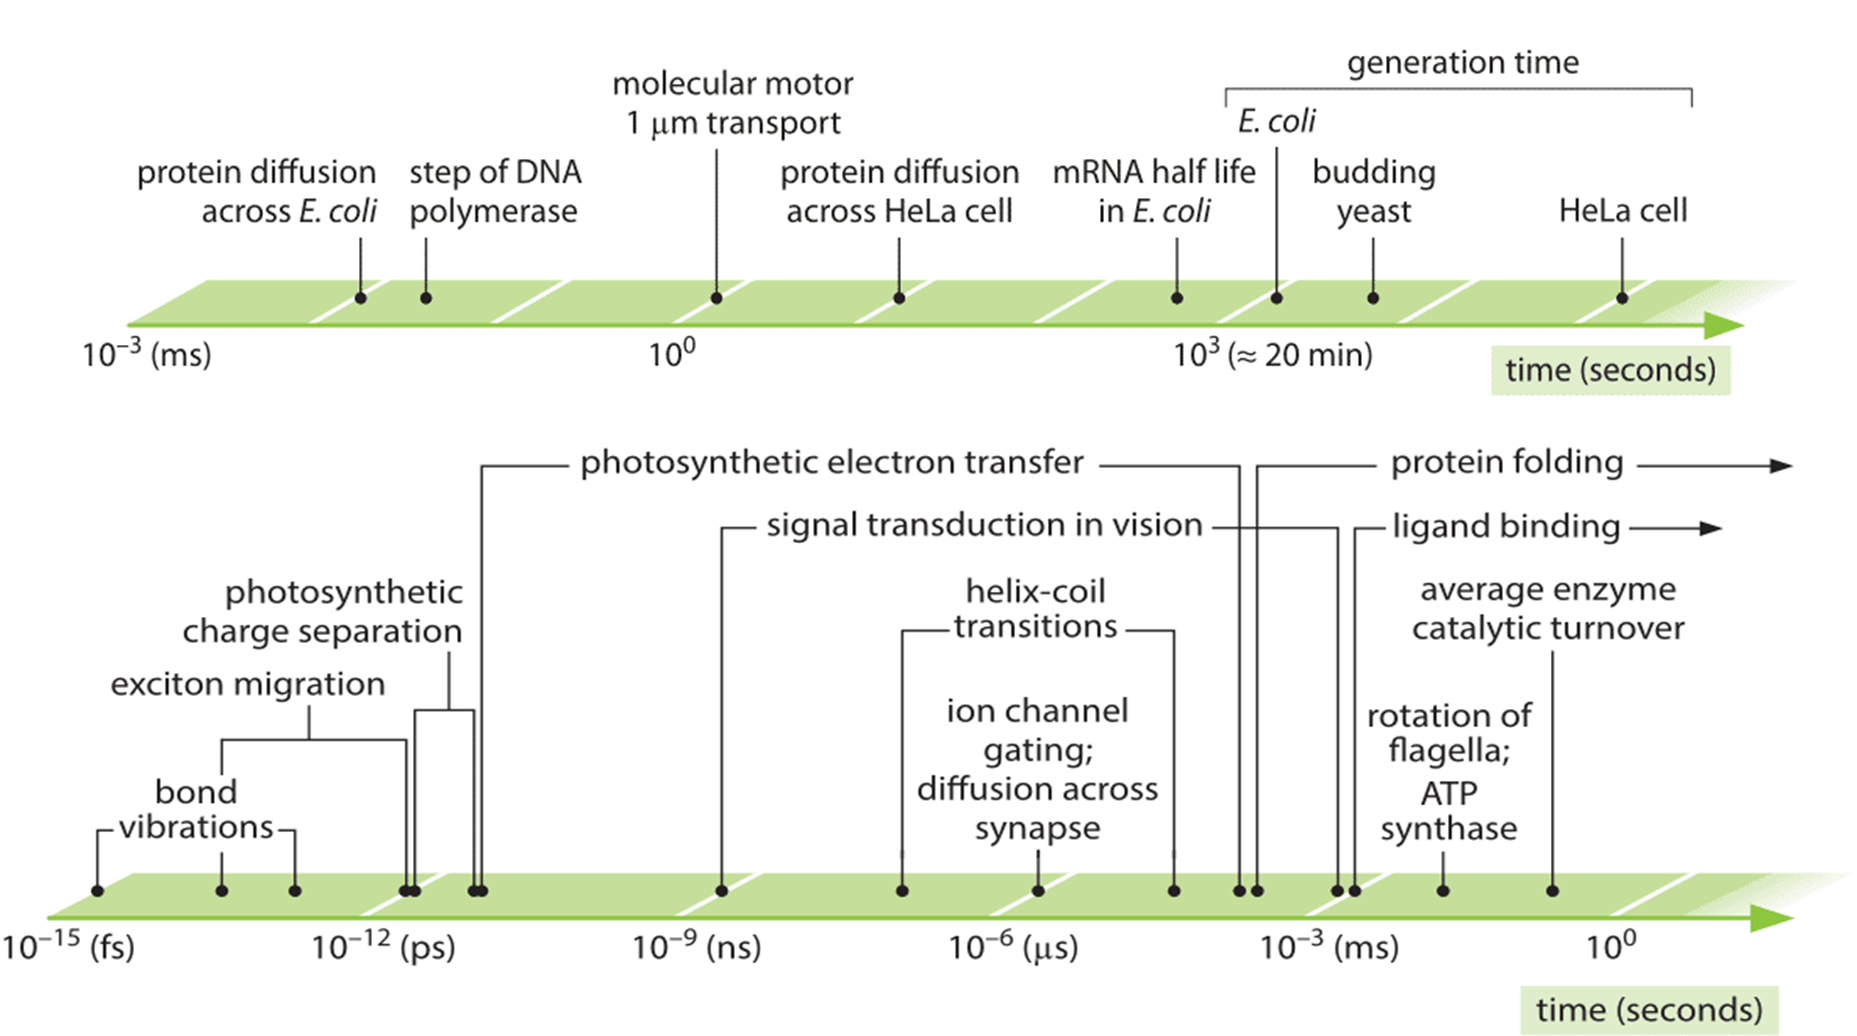 Figure 1: Range of characteristic time scales of central biological processes. Upper axis shows the longer timescales from protein diffusion across a bacterial cell to the generation time of a mammalian cell. The lower axis shows the fast timescales ranging from bond vibrations to protein folding and catalytic turnover durations.